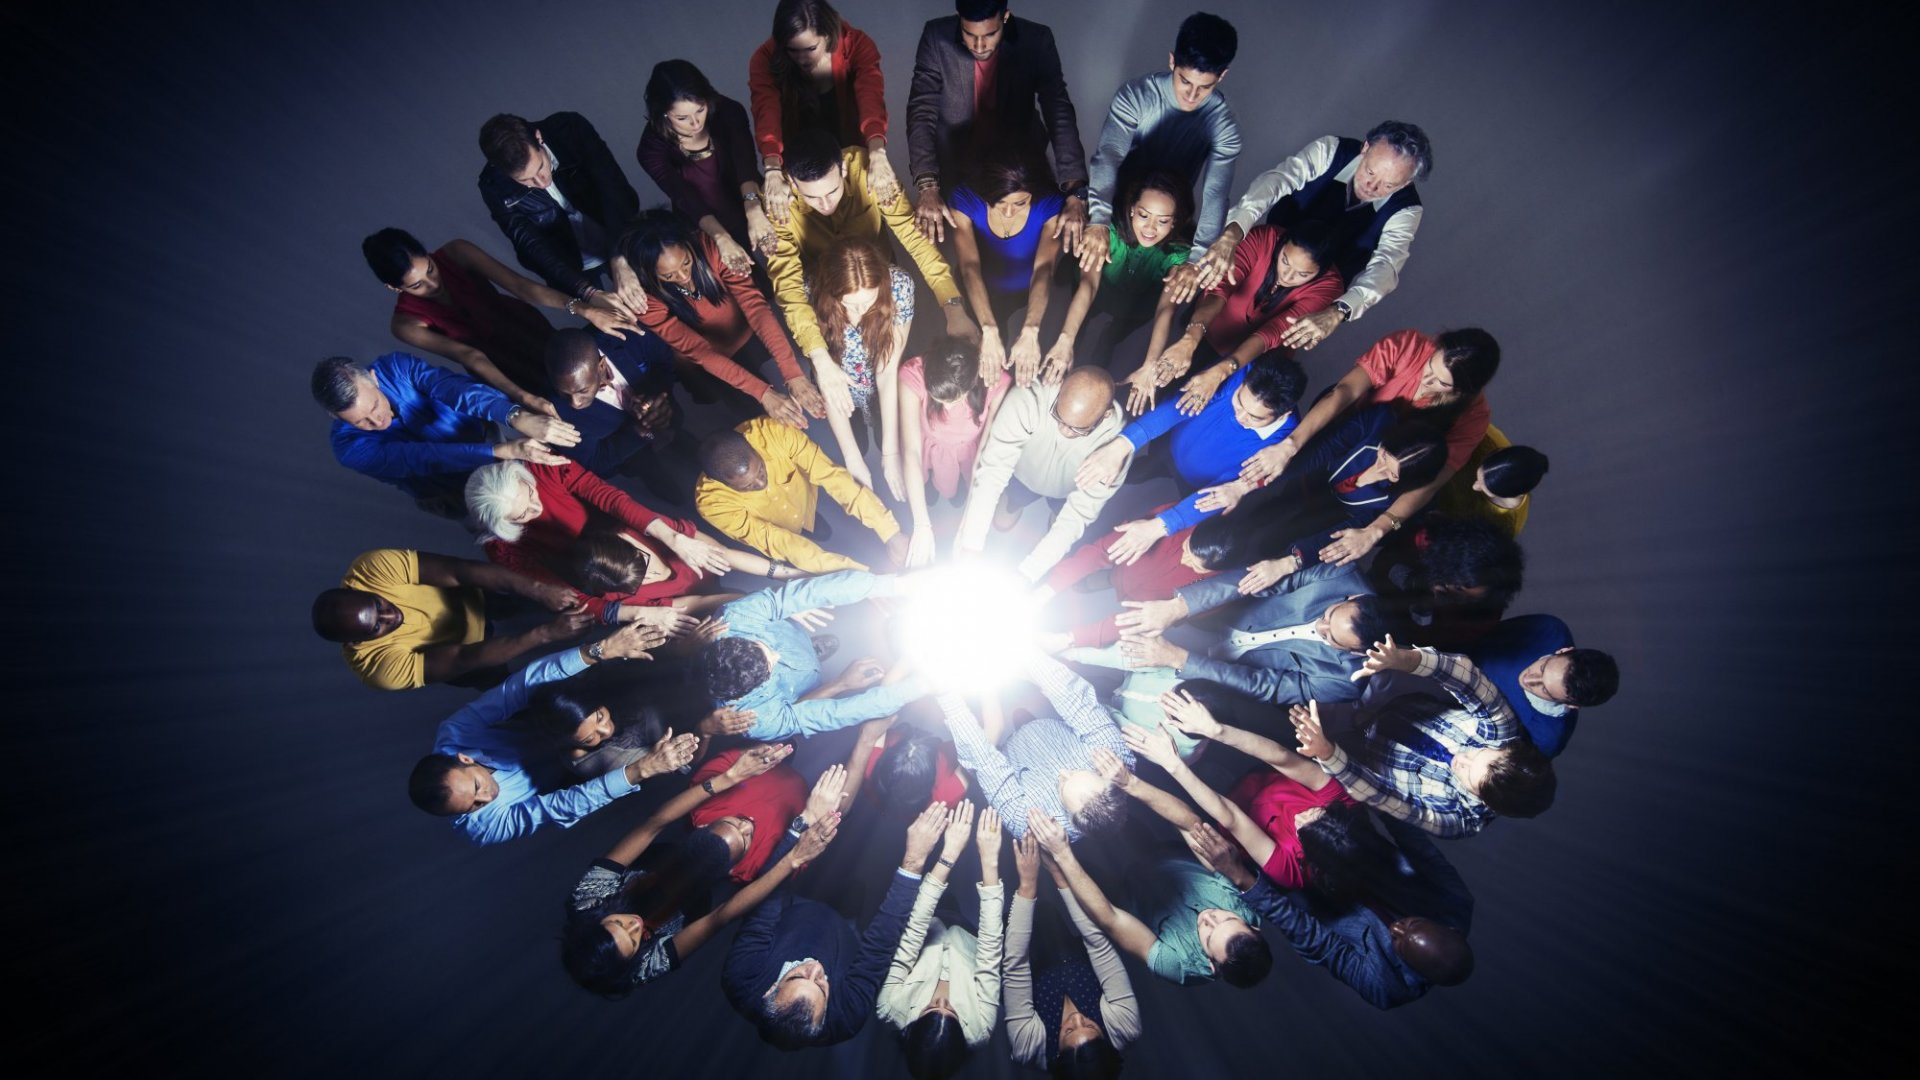 How to Maintain the Heart and Soul of Your Organization While Managing Change